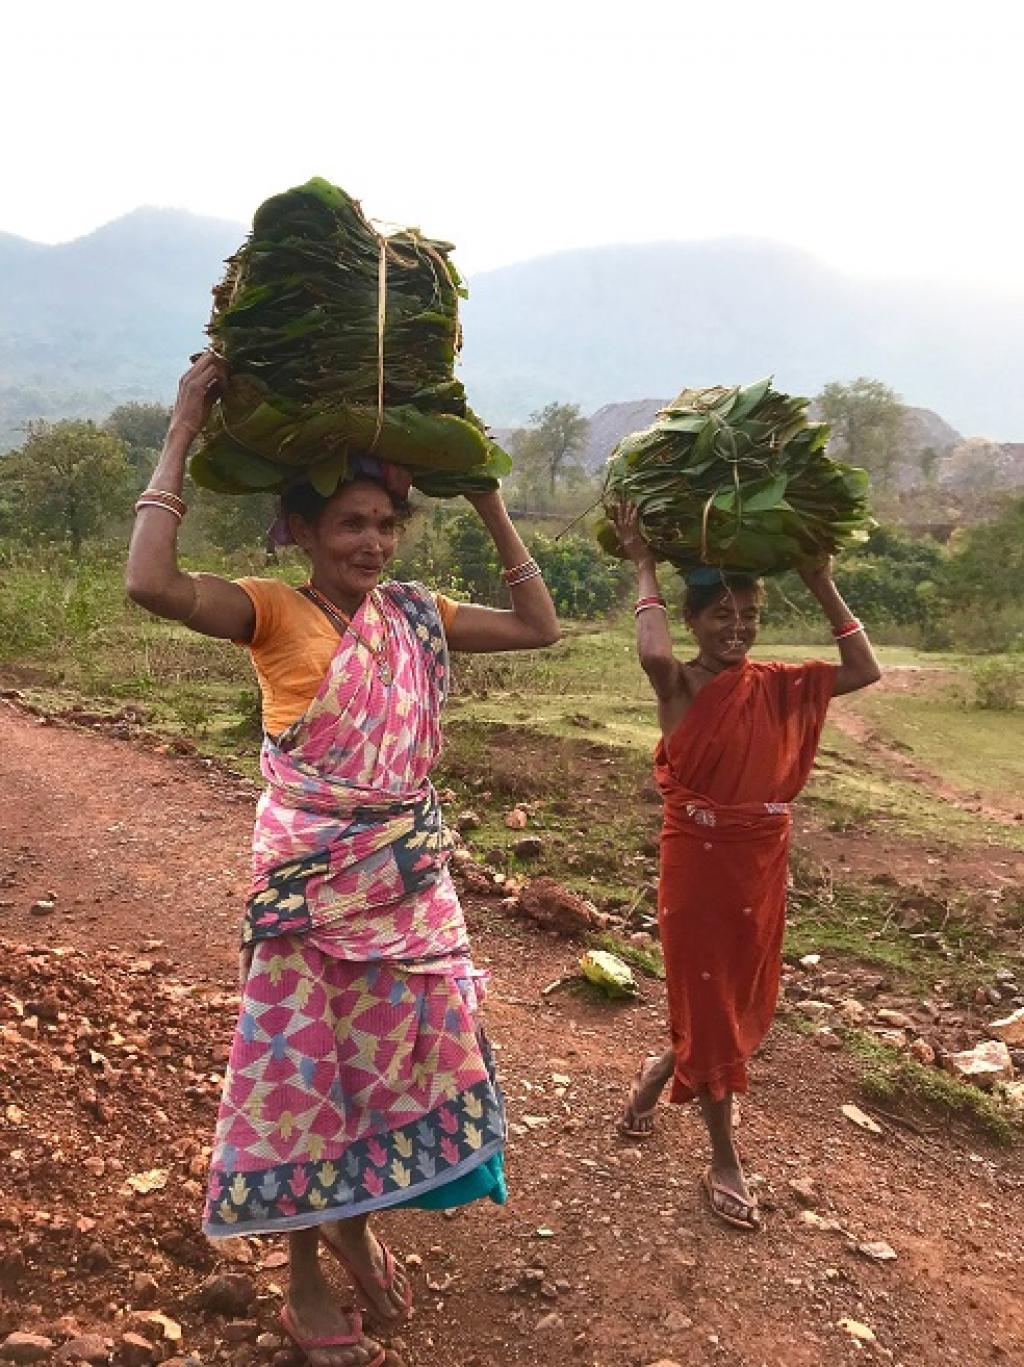 Many people in Keonjhar and Sundargarh districts depend on forests for their livelihood and gather minor forest produce such as mahula, kusum knots, tamarind, sal leaf and mushroom. Photo: Chinmayi Shalya